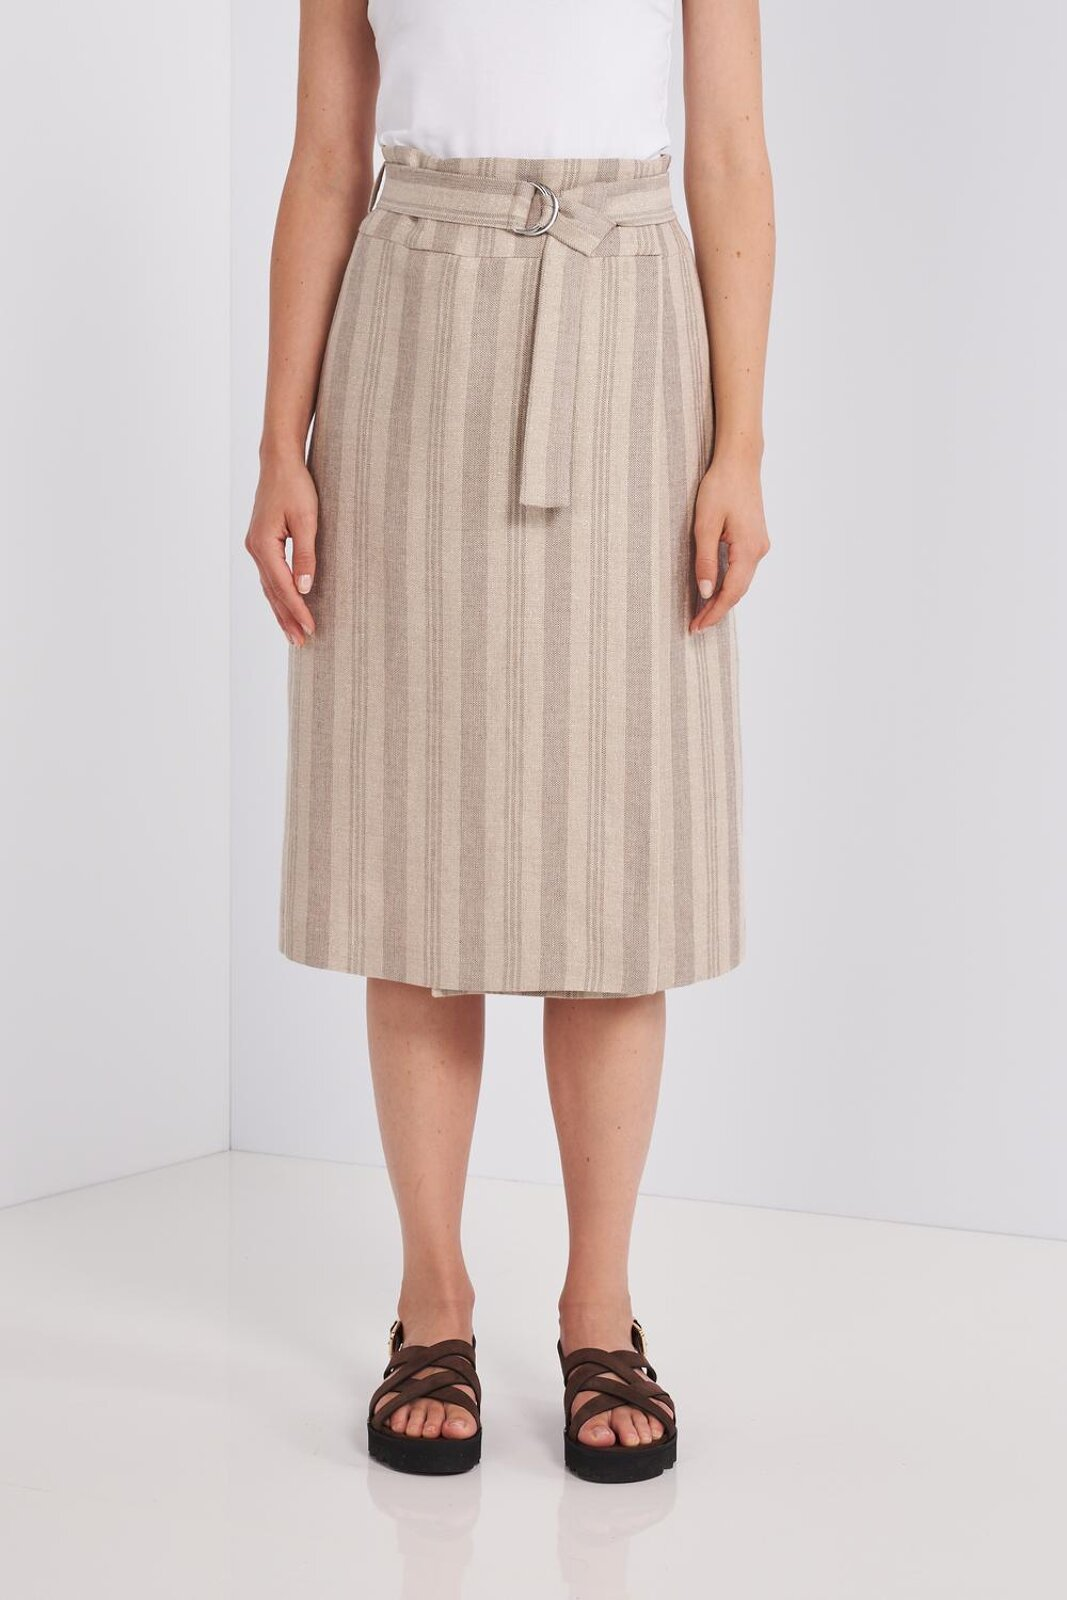 Knee-length Midi Skirt In Fresh Linen And Cotton With Striped Pattern. High waist with adjustable fabric belt, wallet fold on the front, front closure with hidden buttons. Regular fit. - Peserico